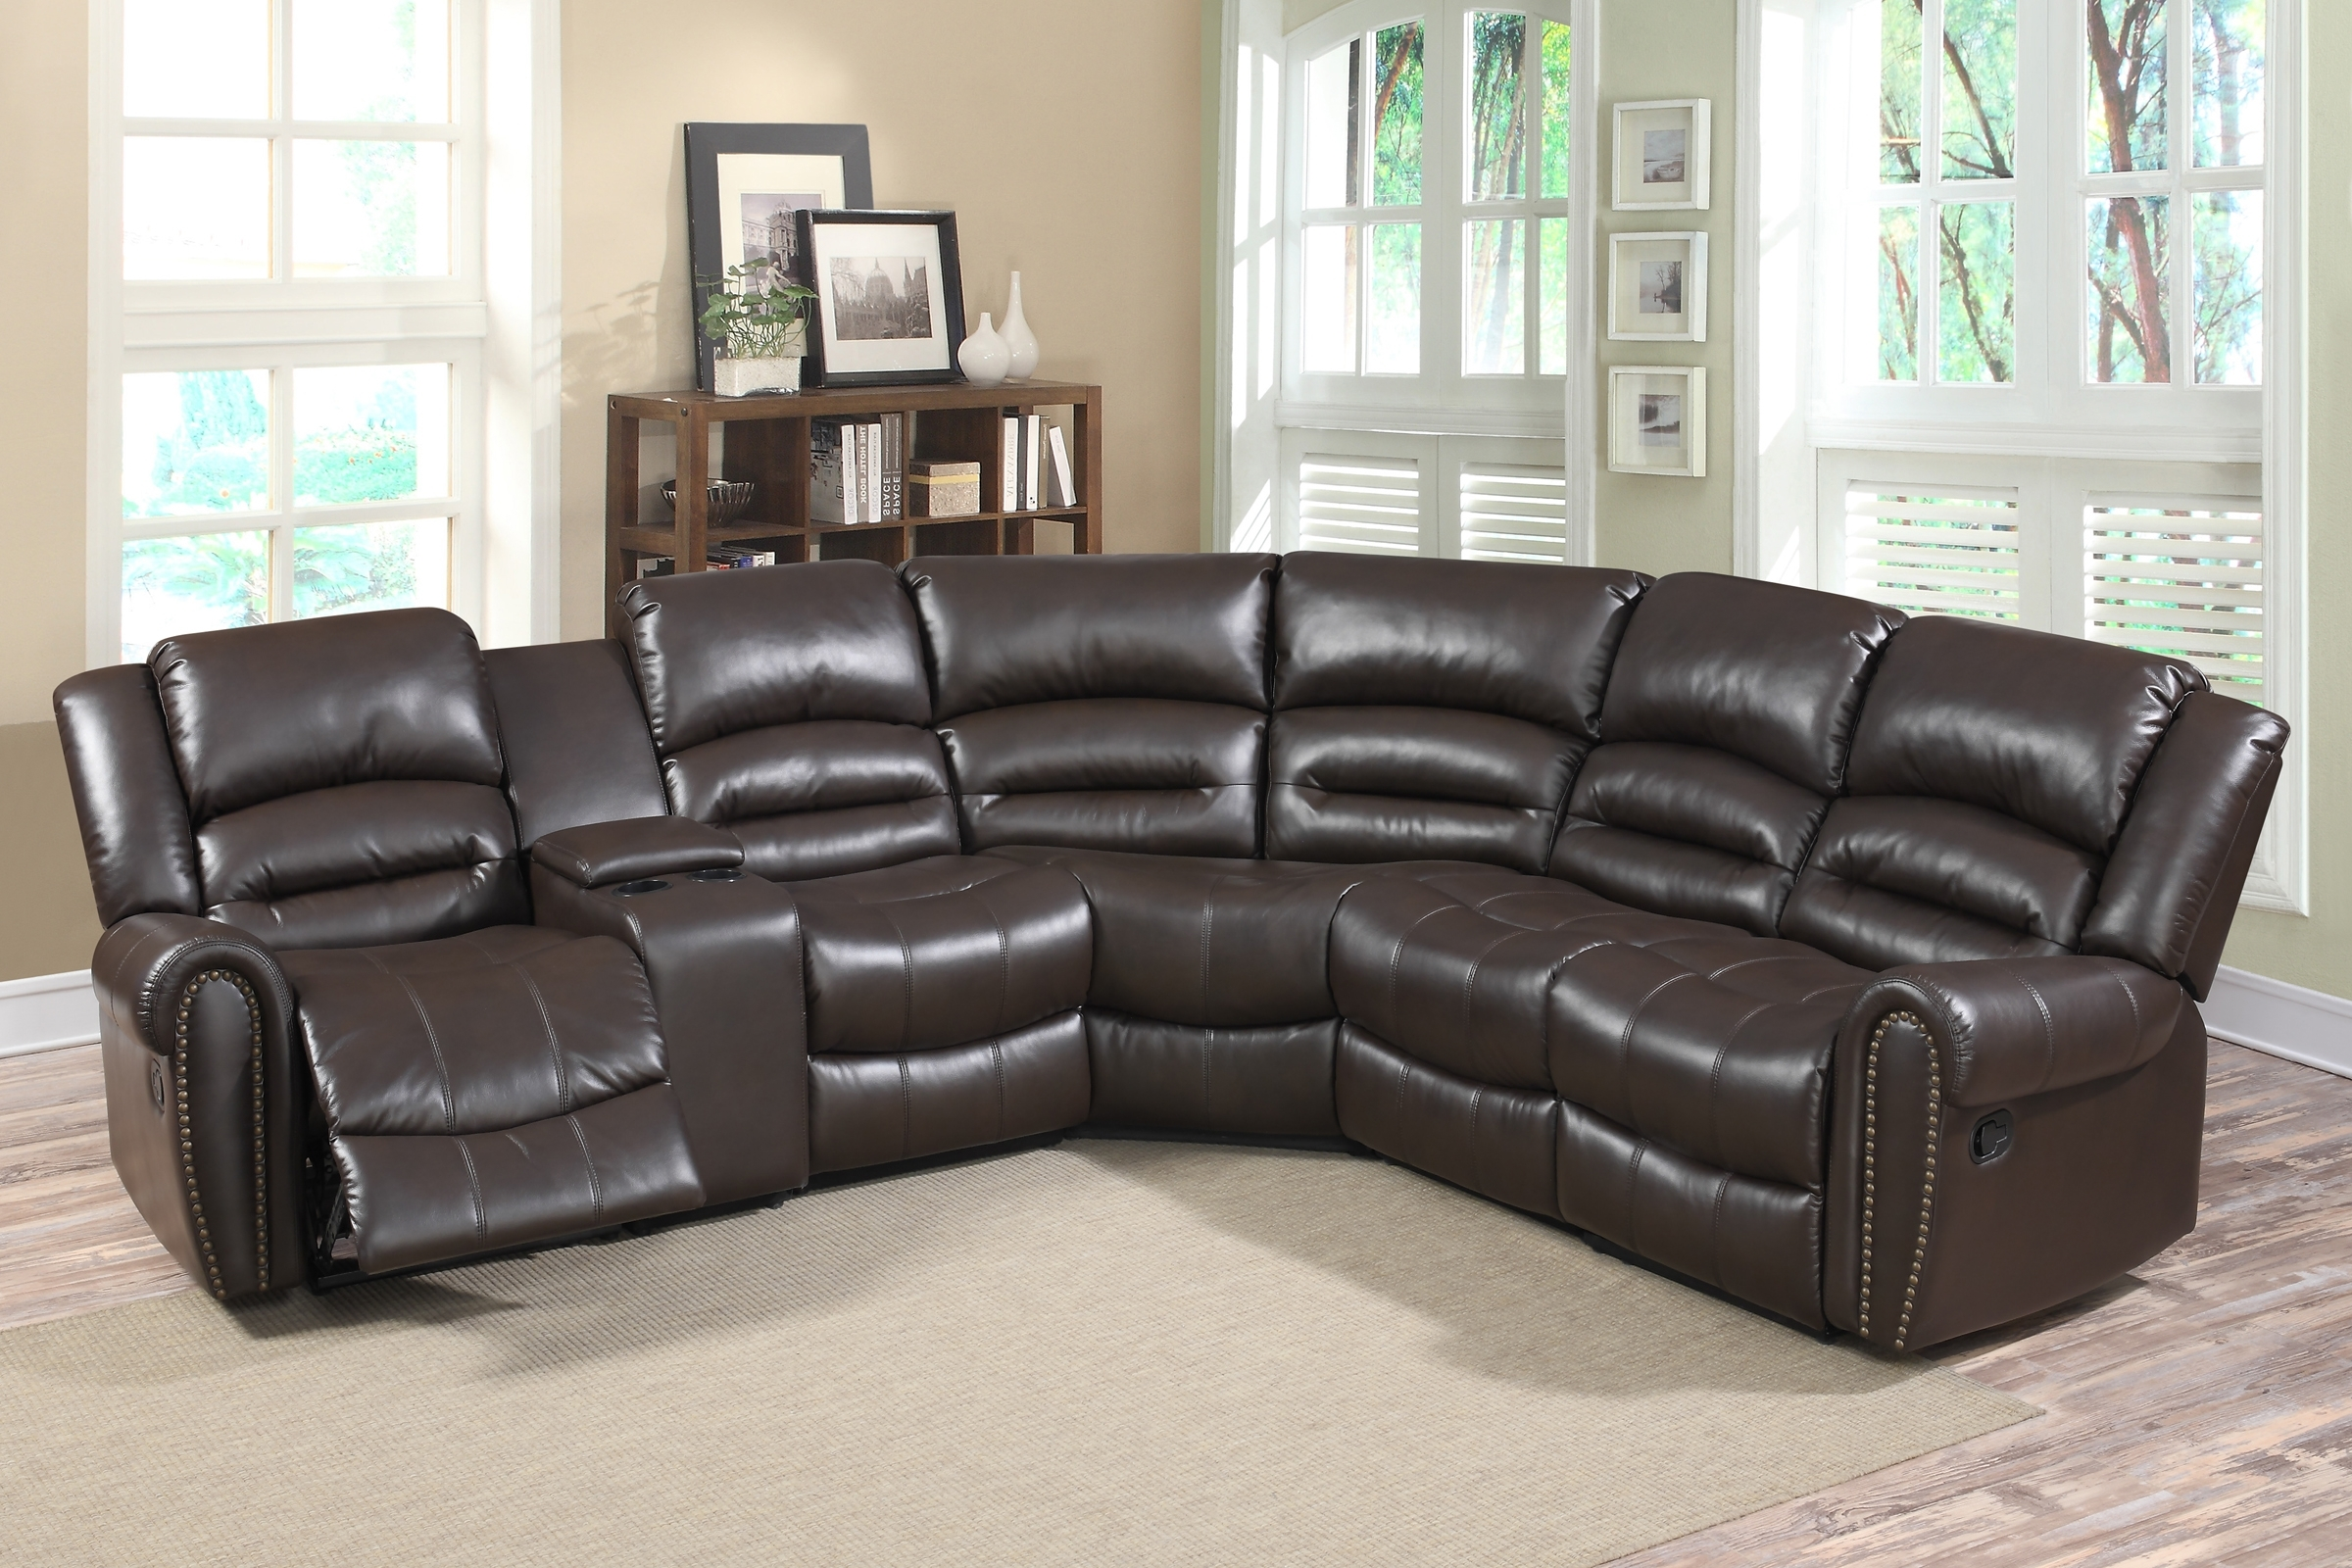 Charmant Sectional Sofas Tucson 72 With Sectional Sofas Tucson Pertaining To Tucson  Sectional Sofas (Image 6